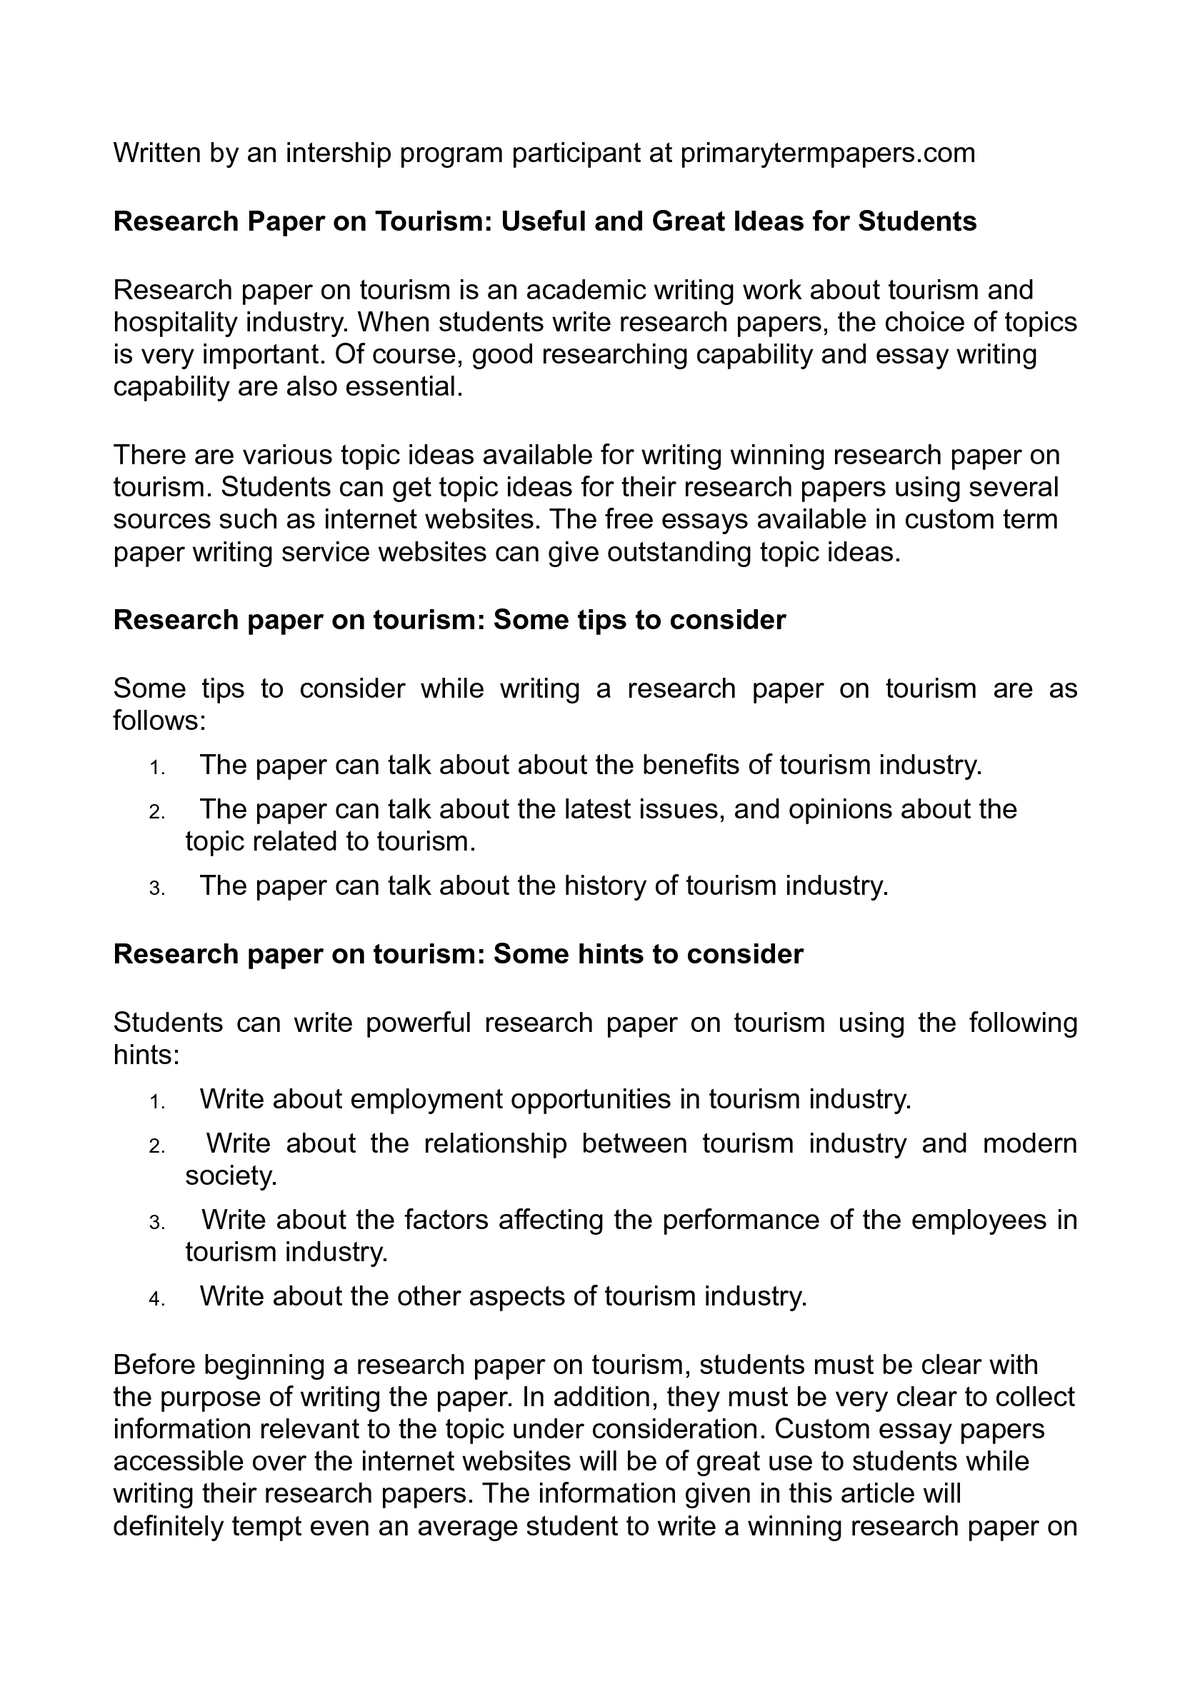 006 P1 Topics To Write Research Paper Fearsome A On Fun History Full